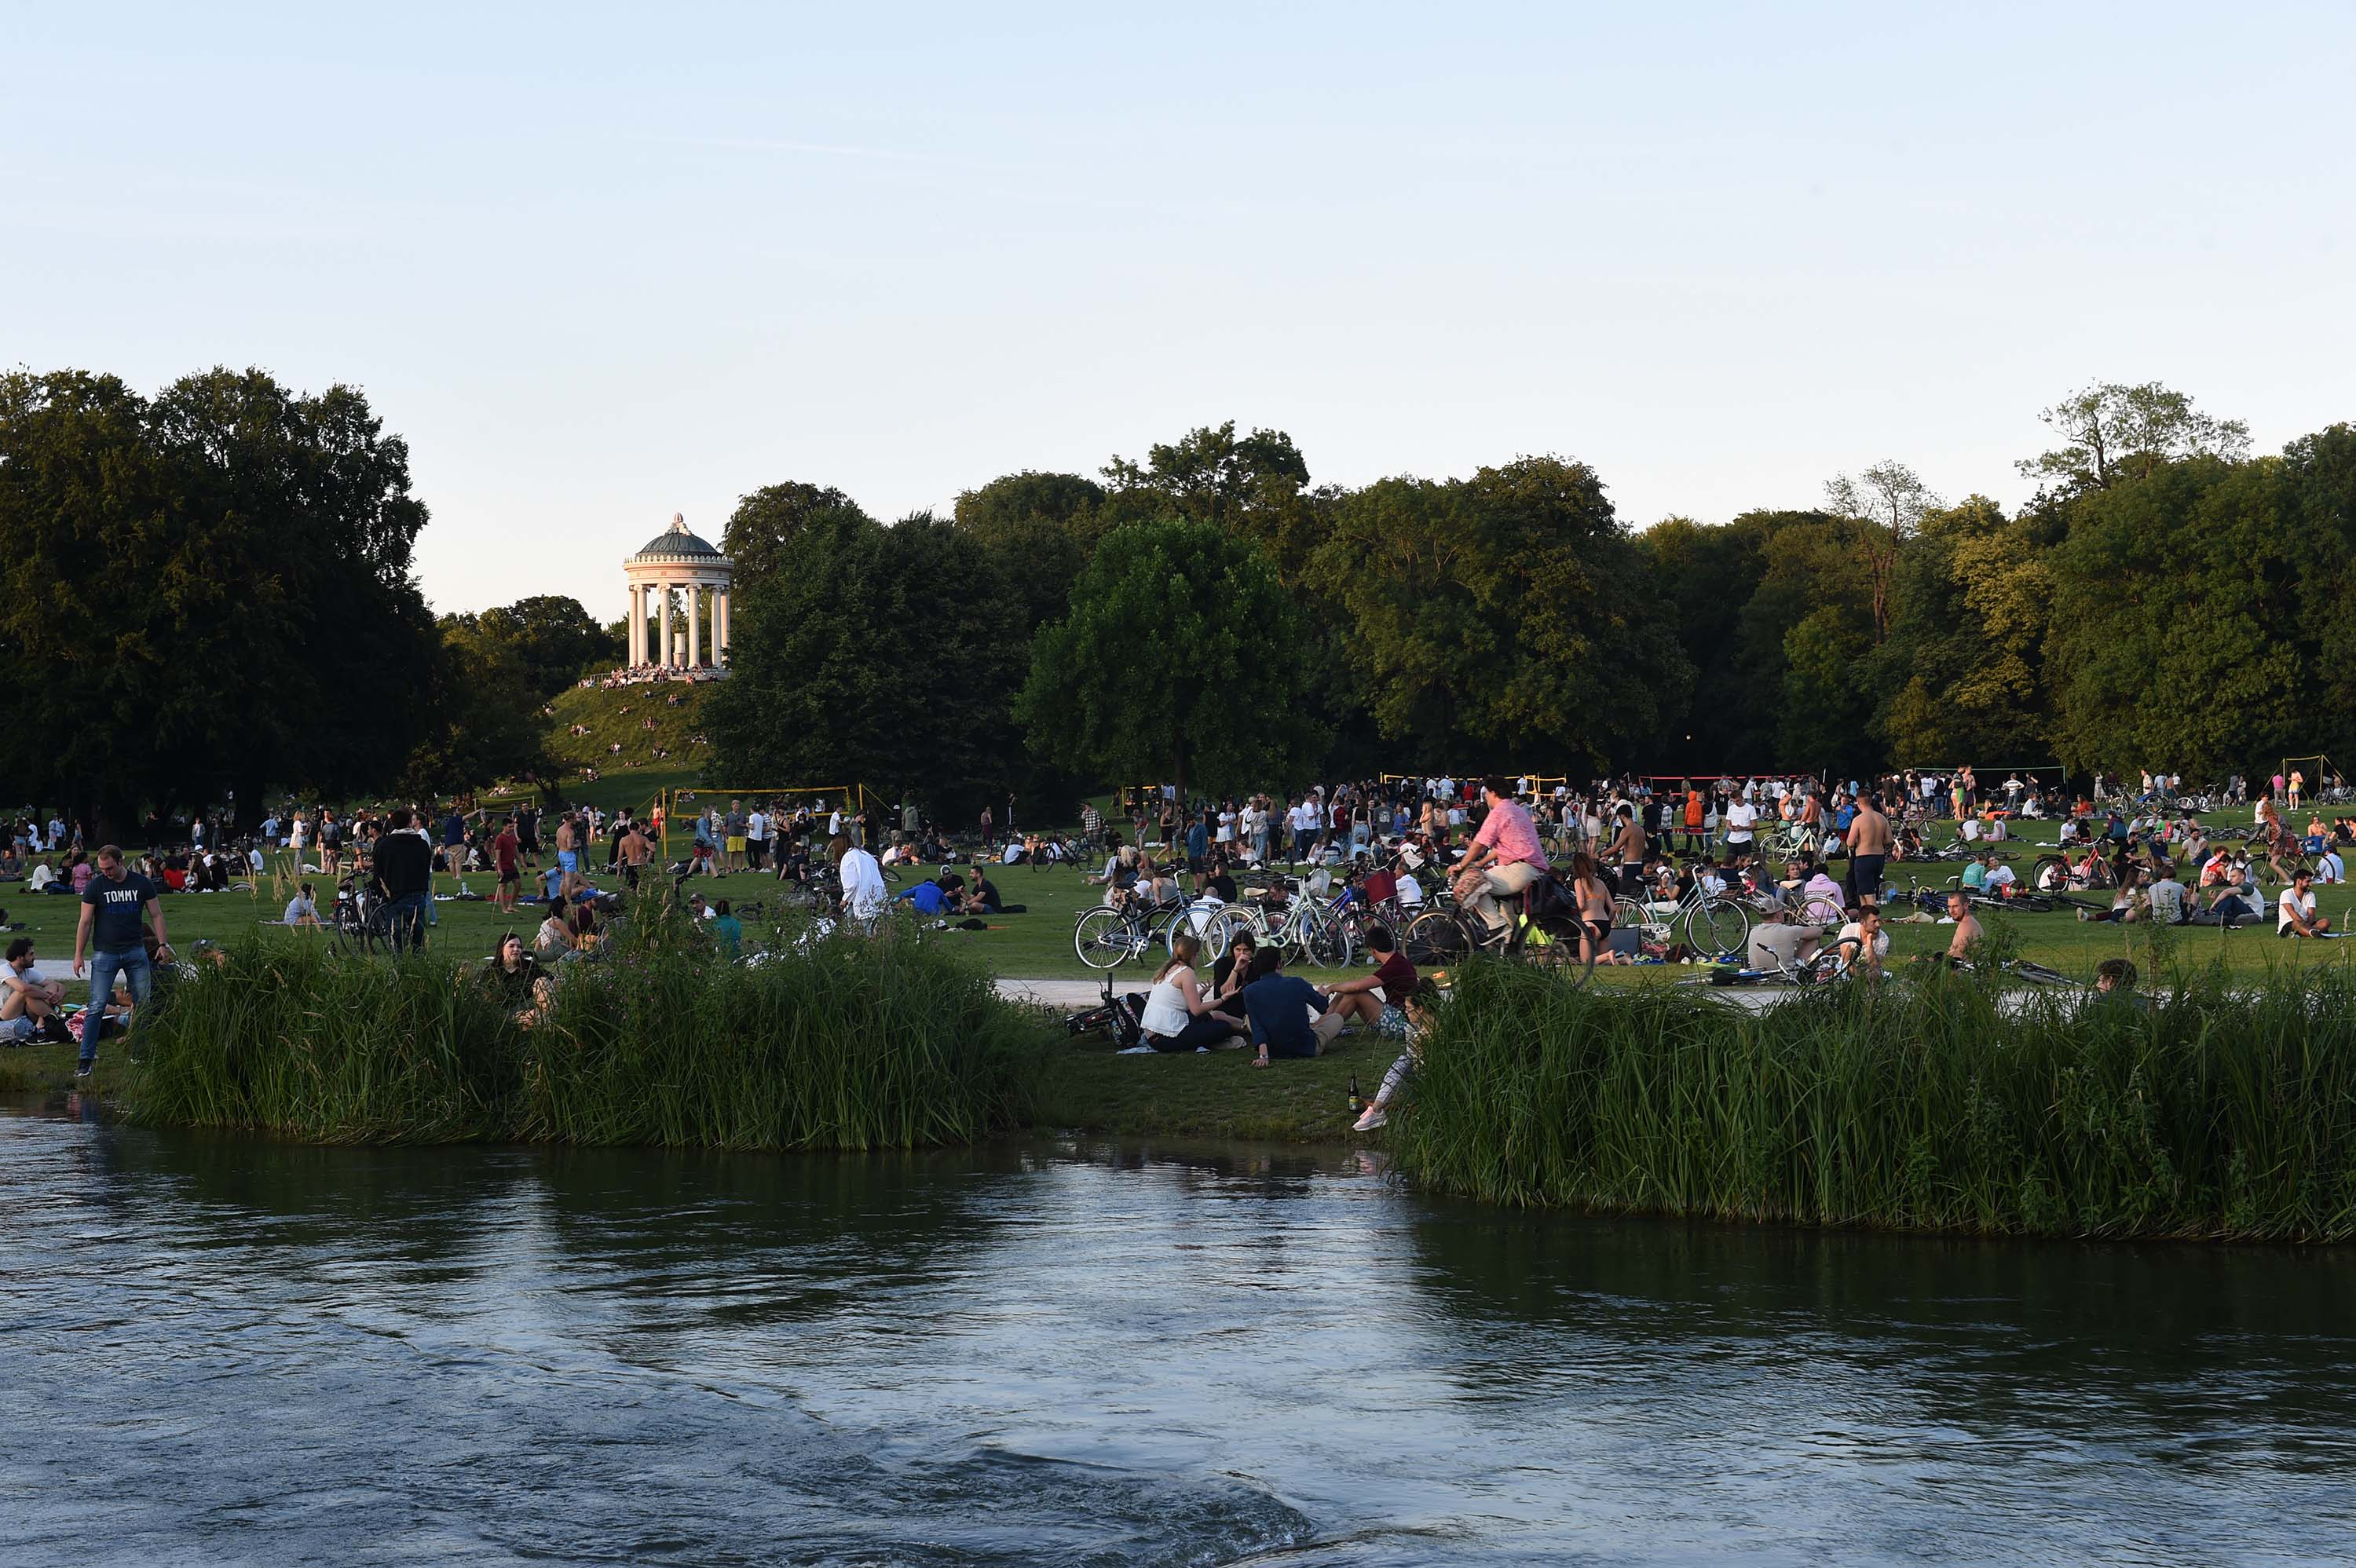 People enjoy a summer evening outdoors at the English Garden in Munich, Germany, on July 14.